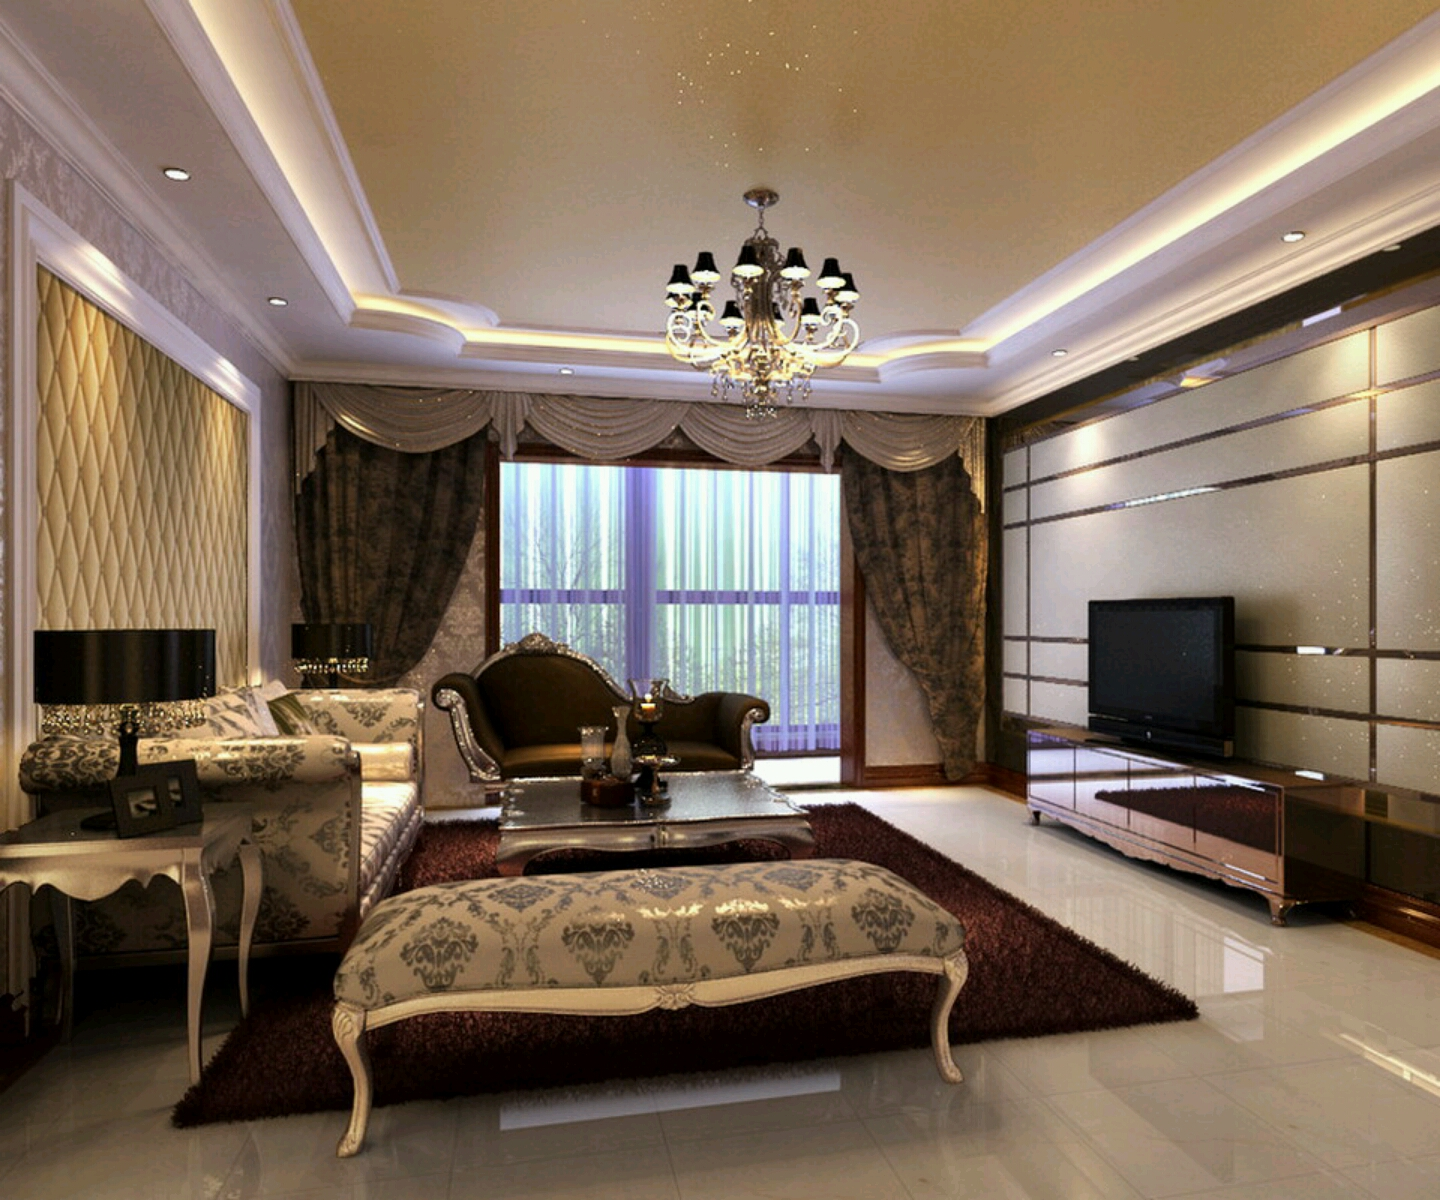 New home designs latest luxury homes interior decoration for New design interior living room